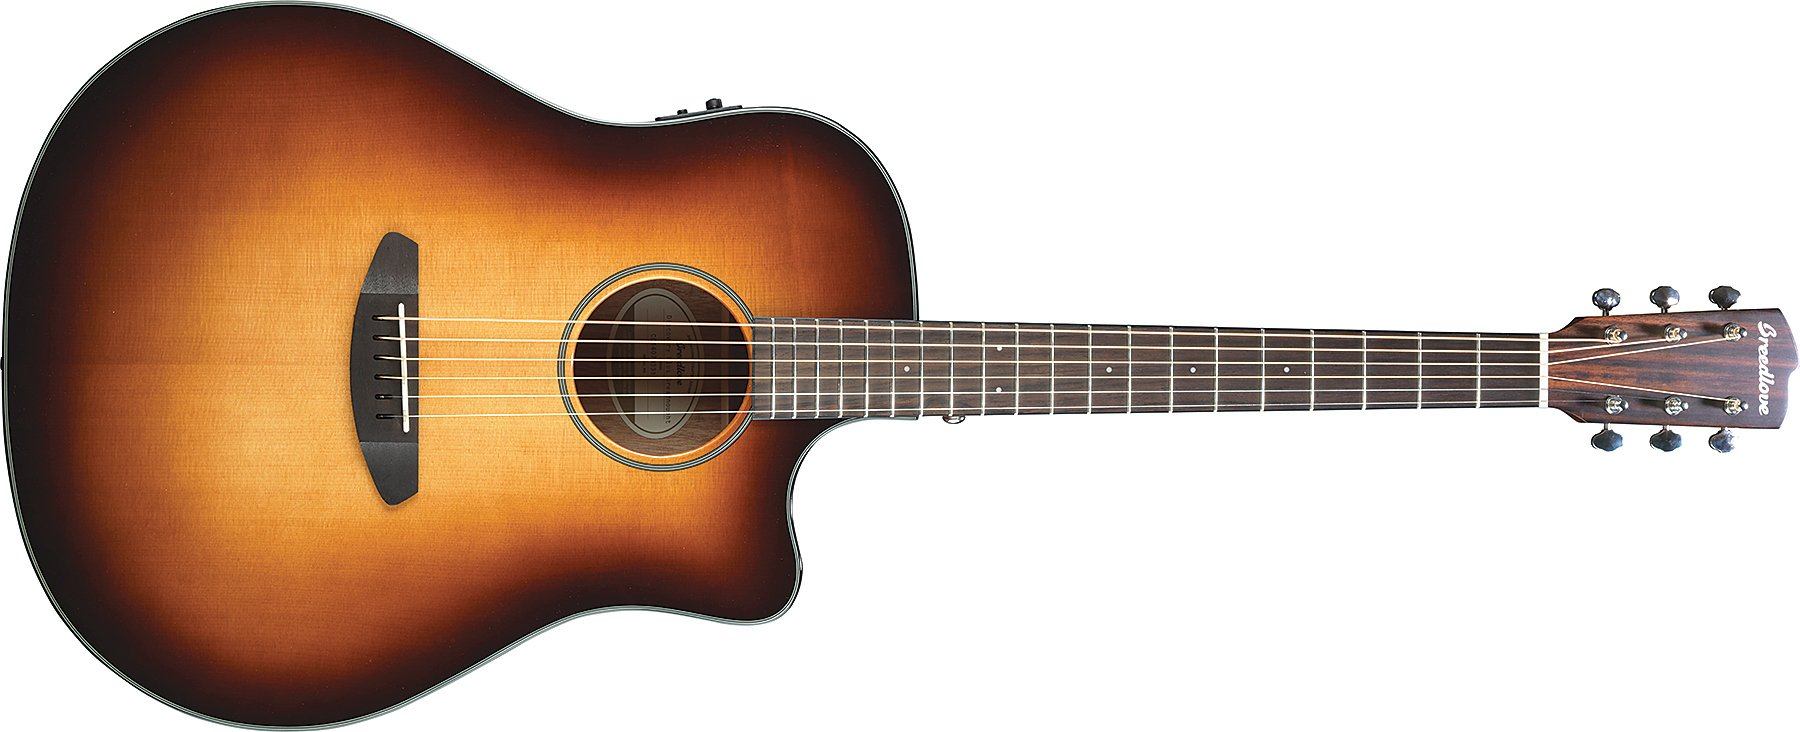 Acoustic-Cutaway Electric Guitar with Sunburst Finish